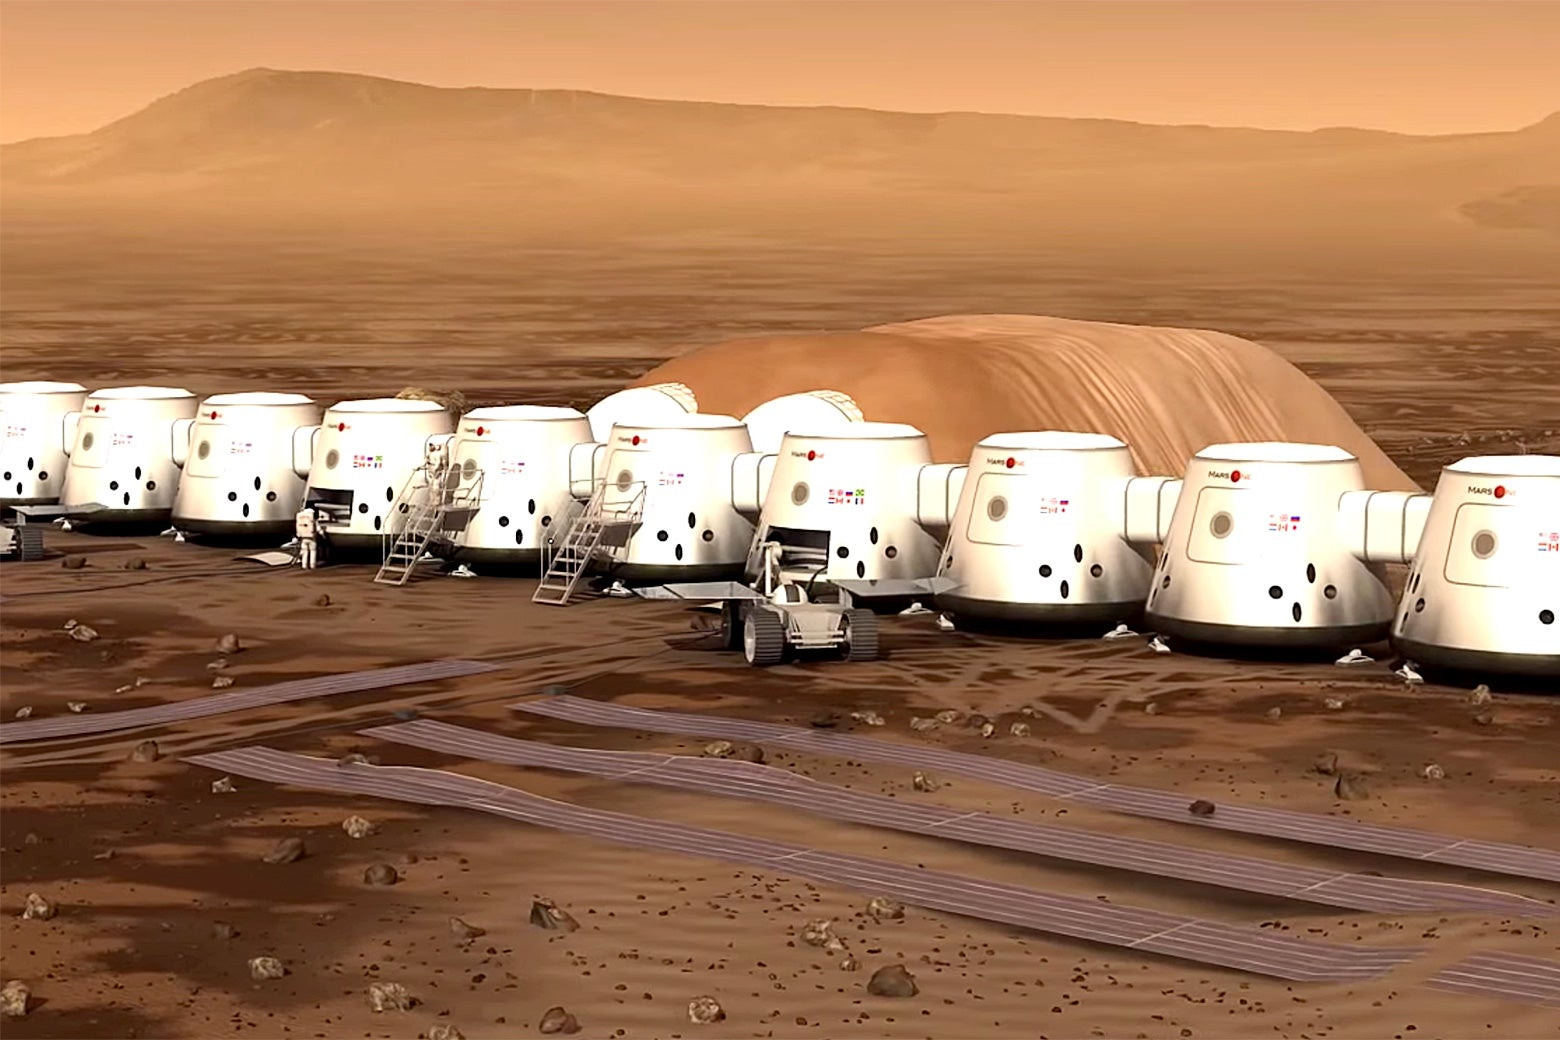 An animated concept of Mars One's future settlement on Mars.